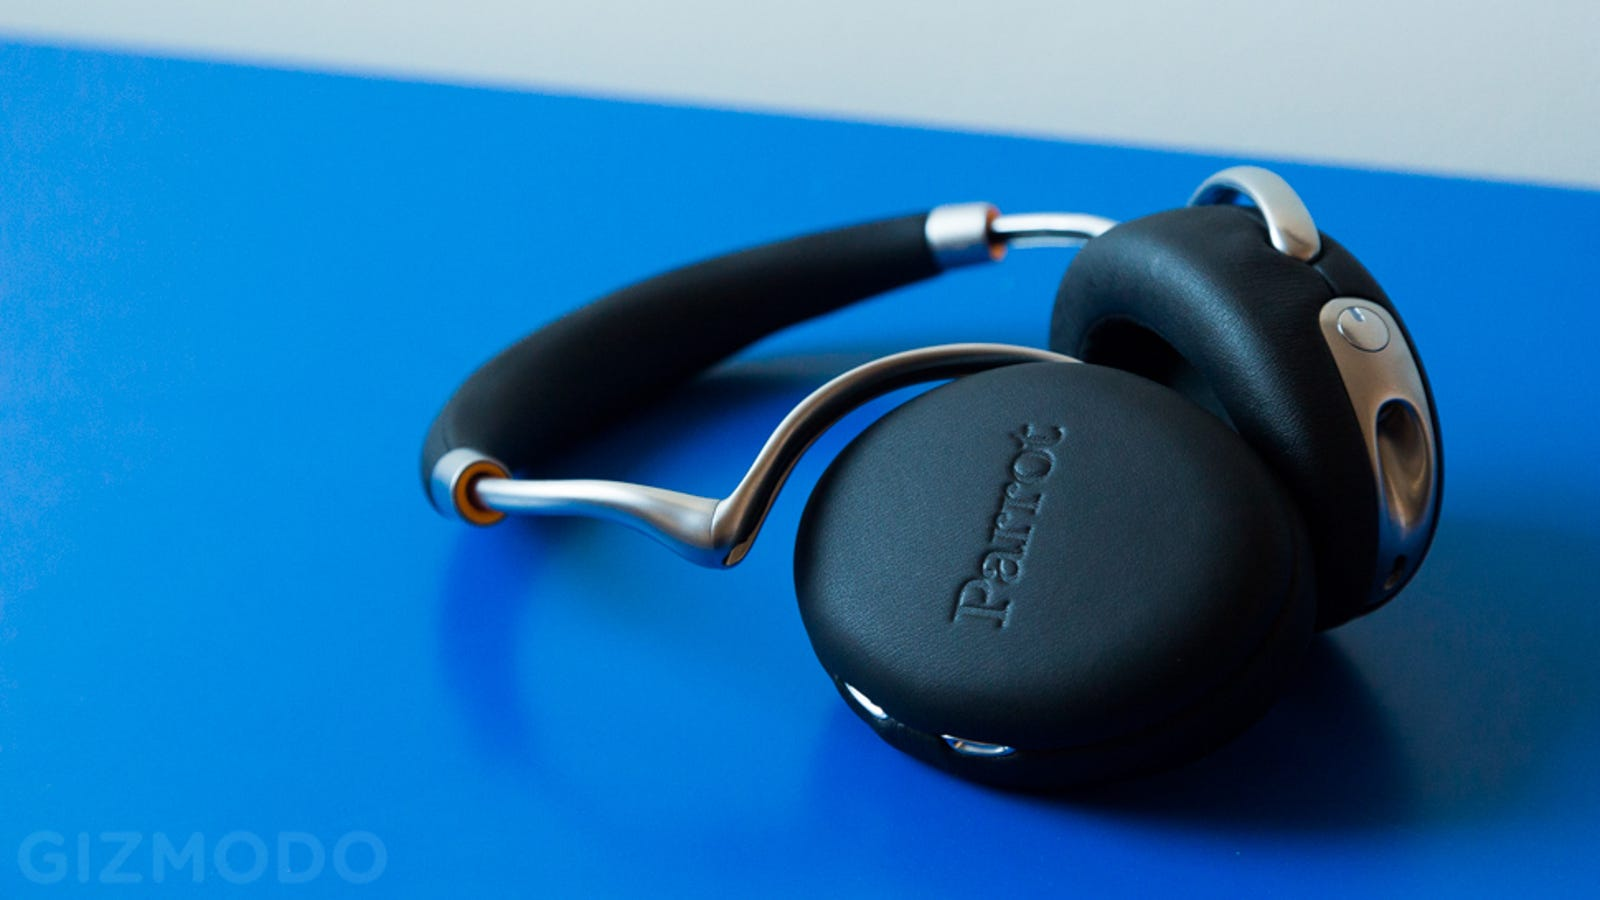 earbud cushions replacement - Parrot Zik 2.0 Hands-On: The World's Most Advanced Headphones? Maybe.